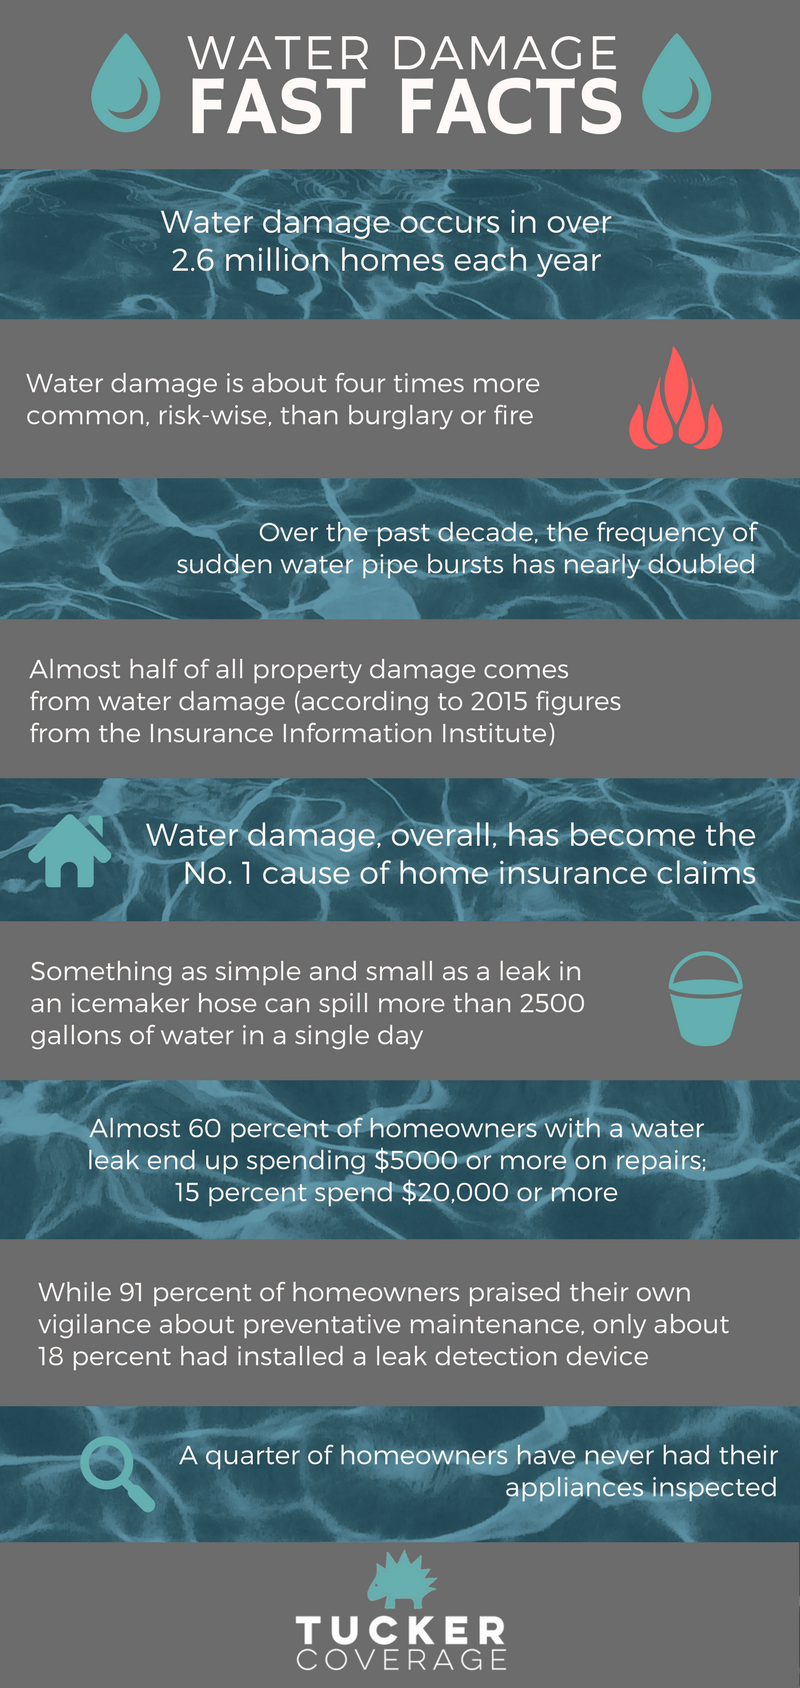 Water damage fast facts.png